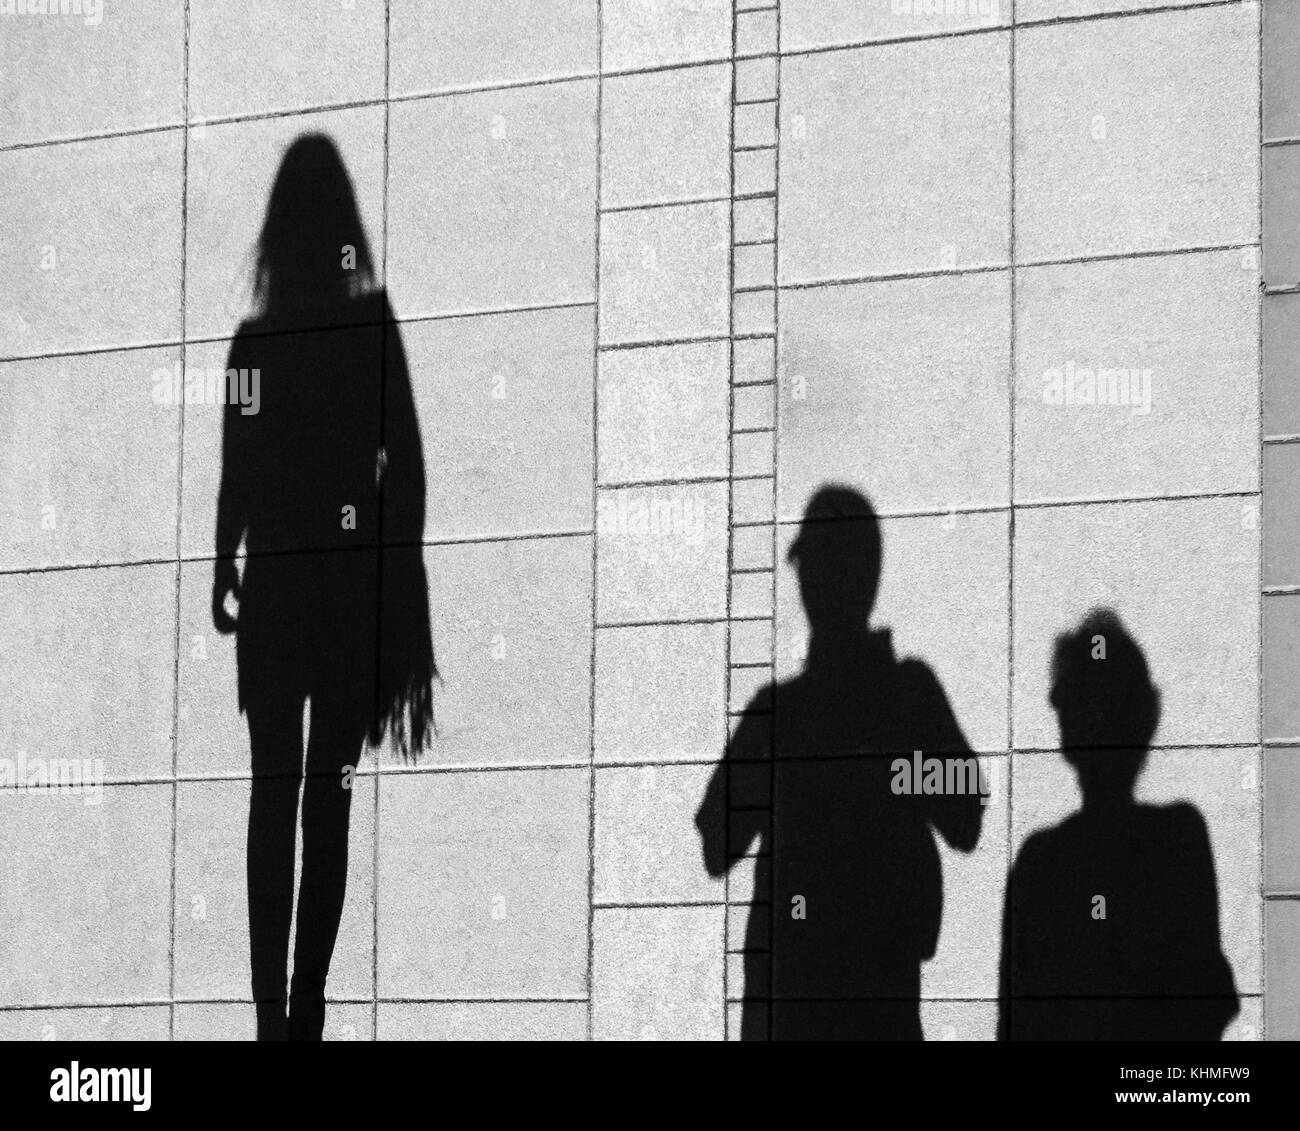 Shadow of parents and teenage daughter , on city sidewalk from above - Stock Image